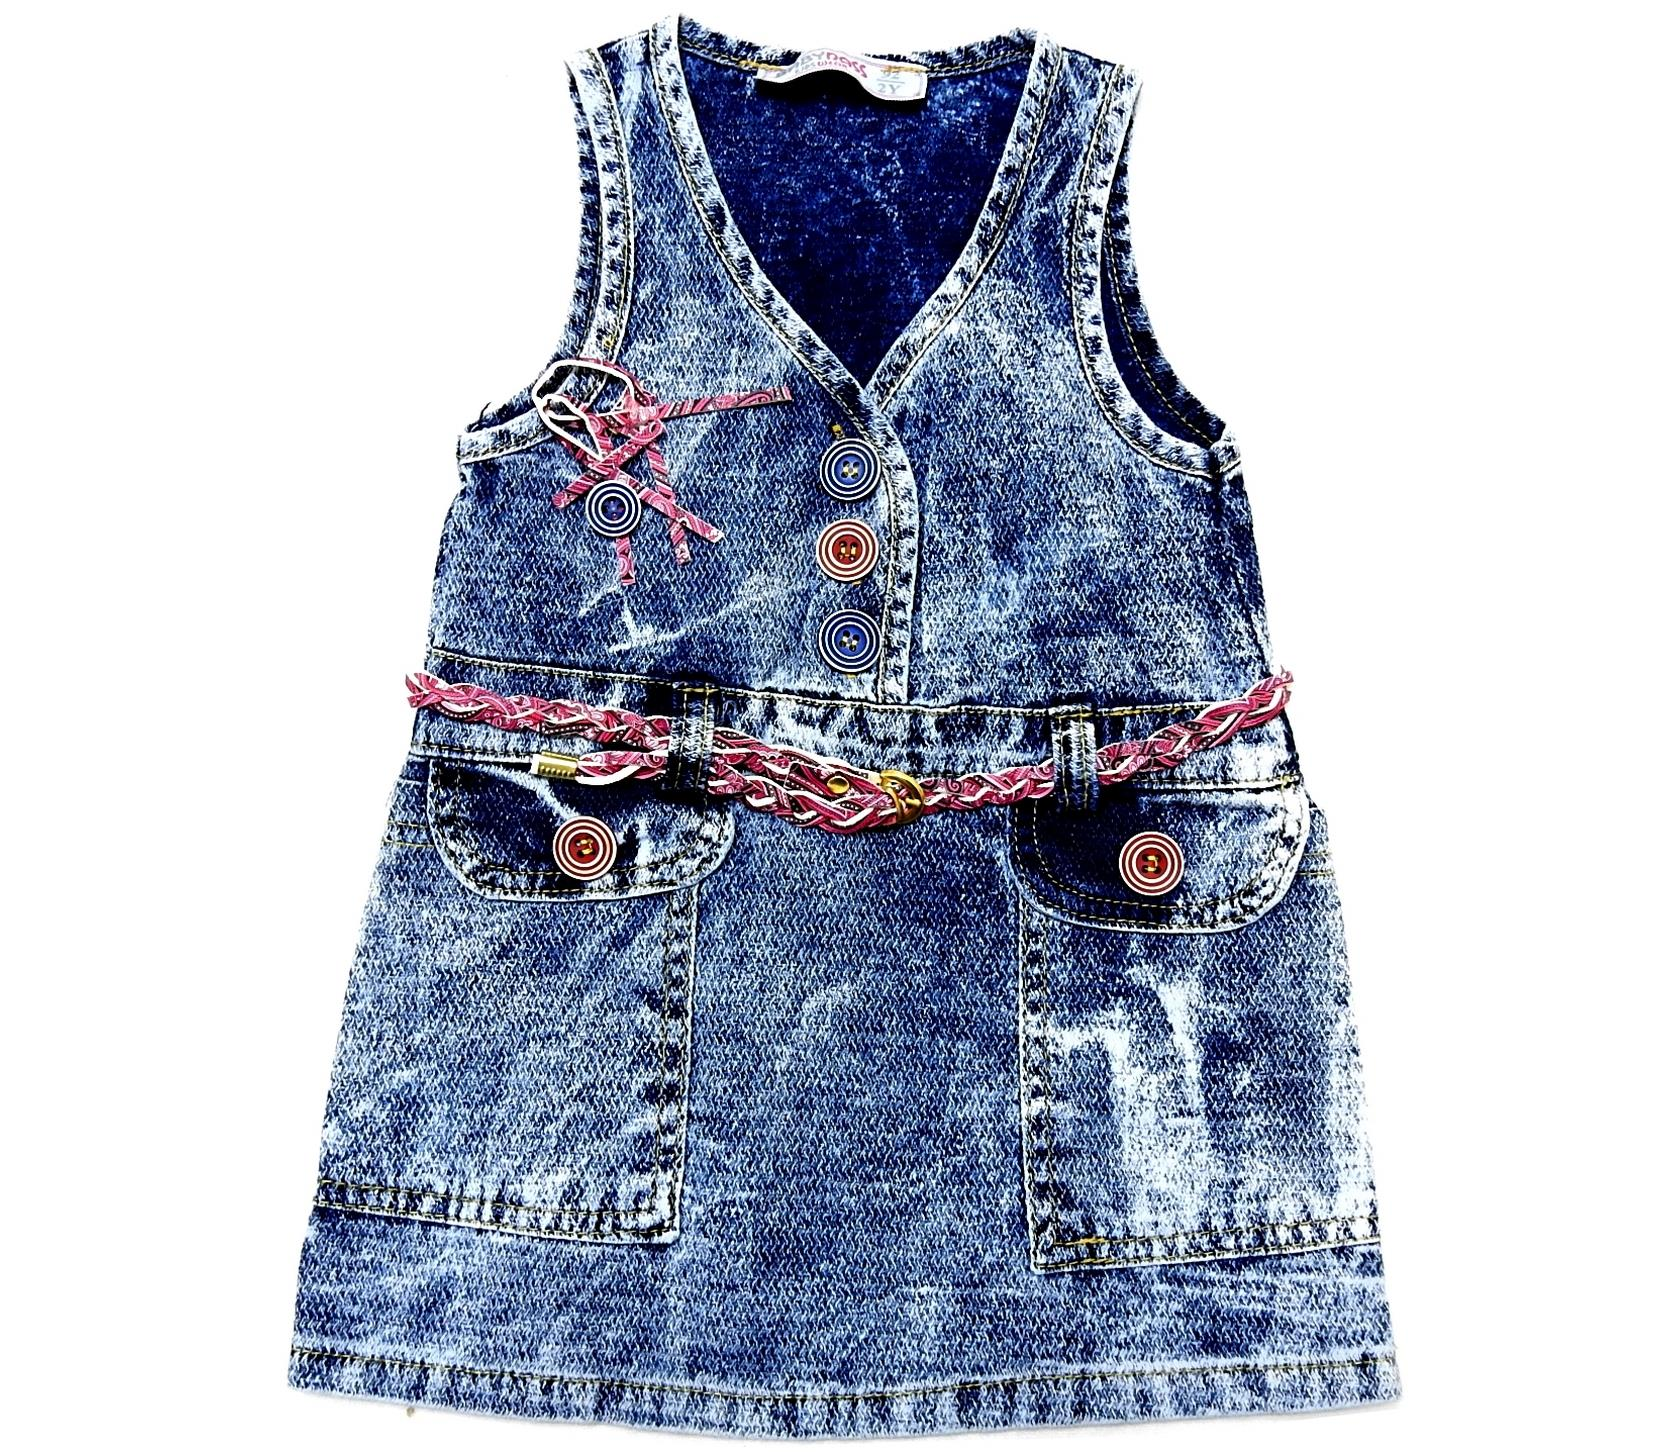 DECORATIVE BUTTON DESIGNED JEANS WAIST FOR GIRL (1-2-3-4 AGE)